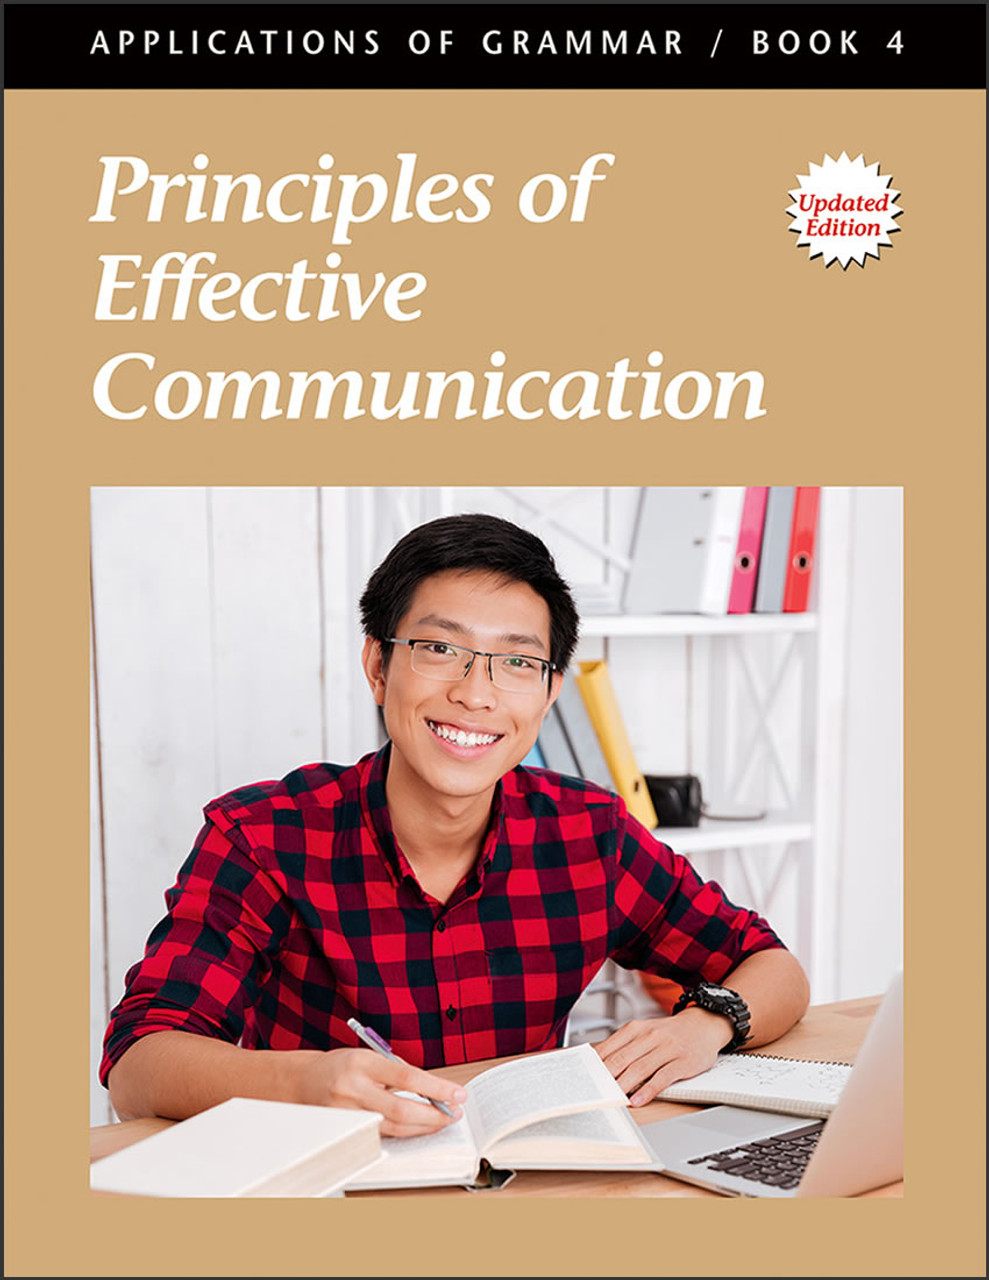 Applications of Grammar Book 4, updated edition